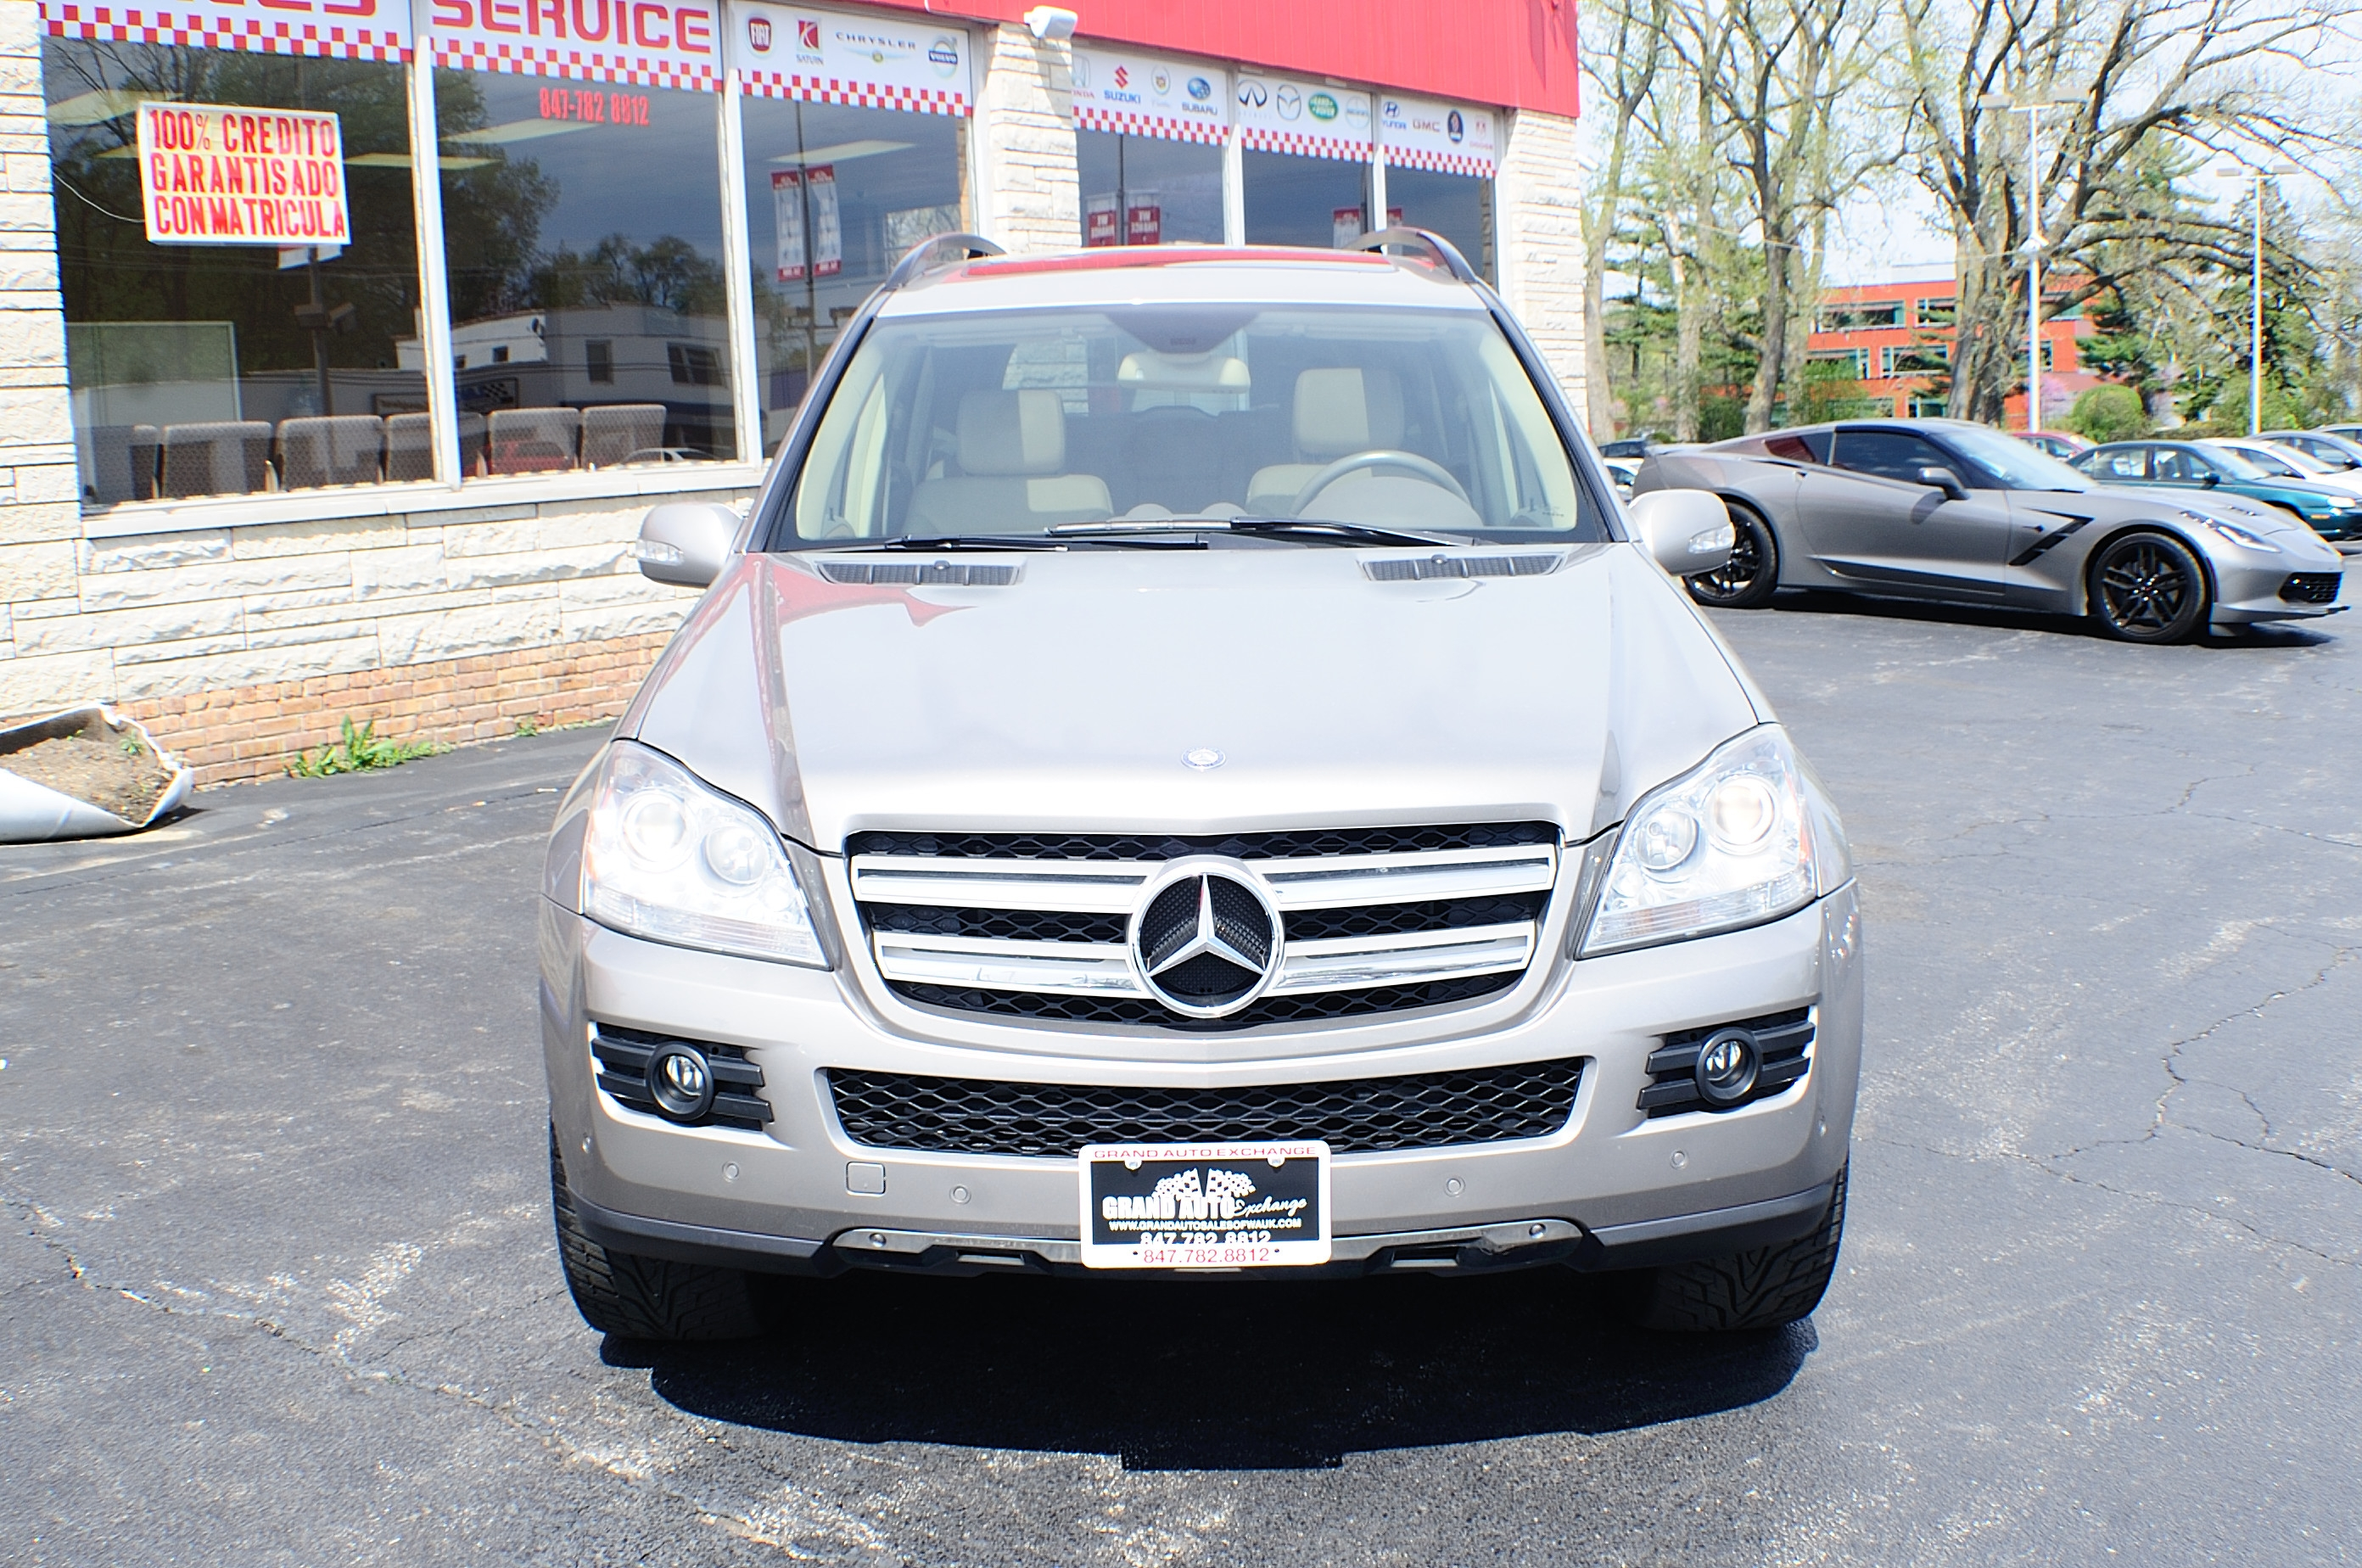 2008 Mercedes Benz GL450 Sand Used 4x4 SUV Sale Gurnee Kenosha Mchenry Chicago Illinois